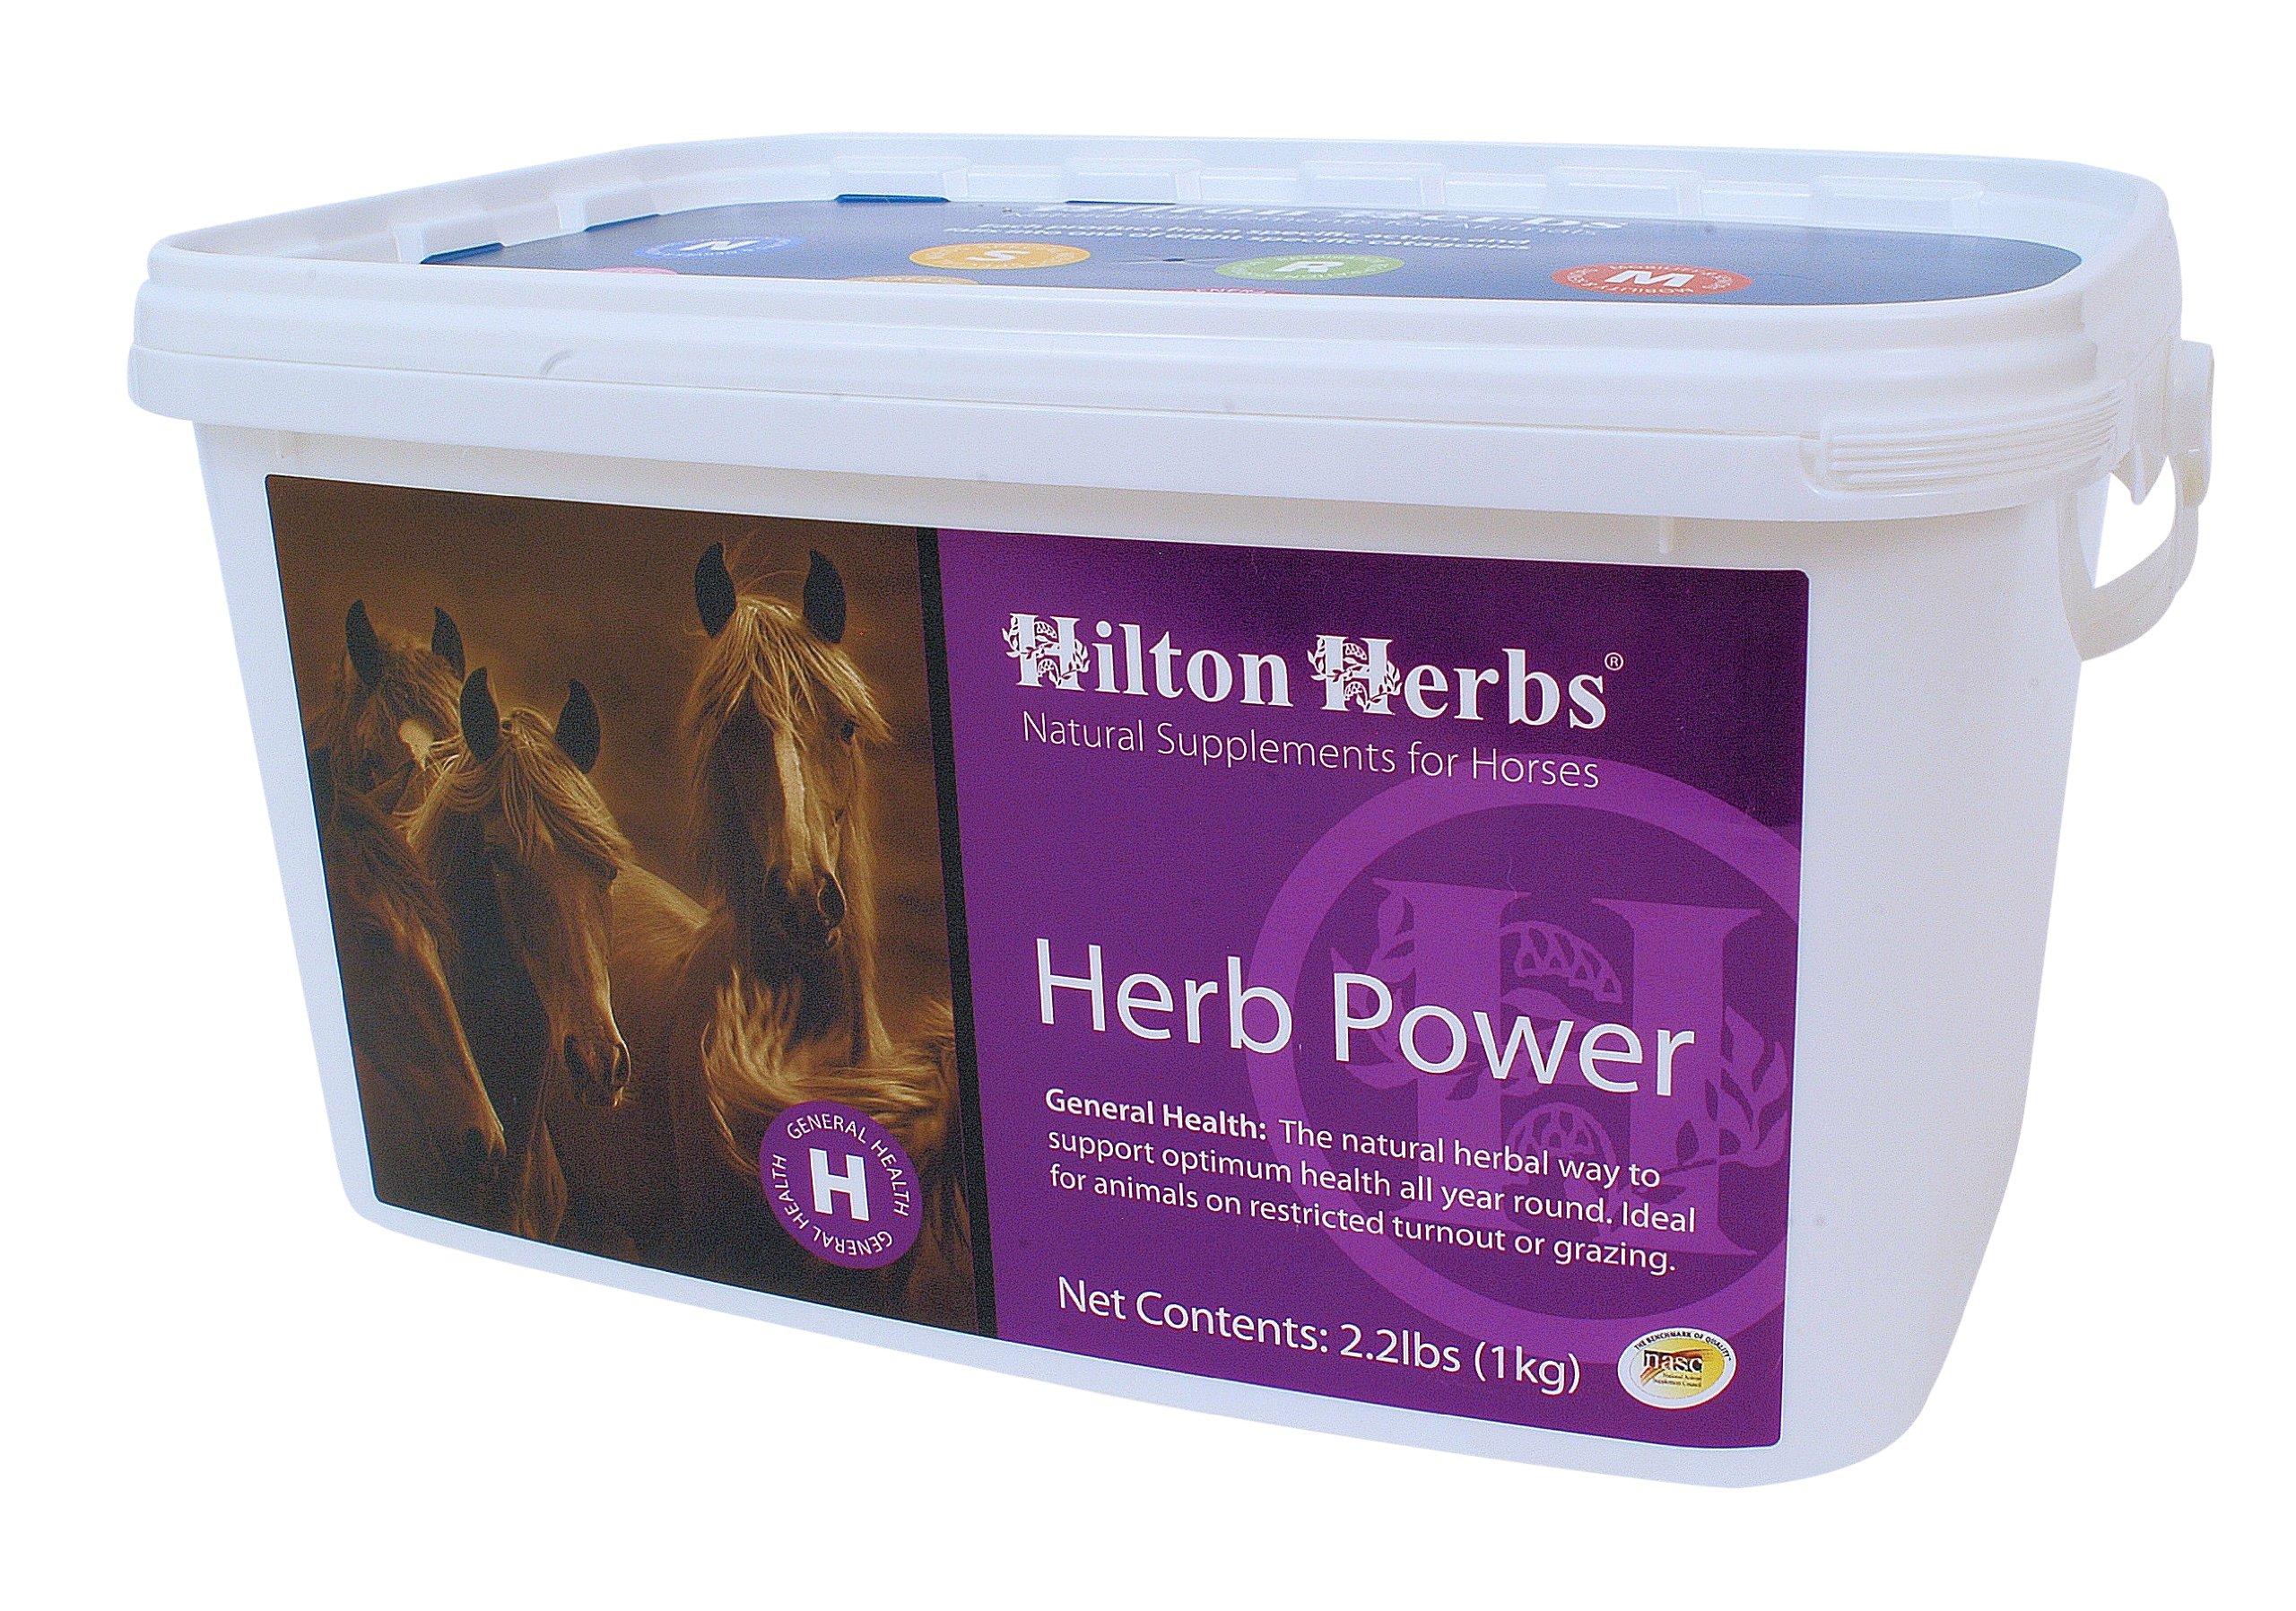 Hilton Herbs General Herb Power Natural Vitamin Supplement for Horses, 1kg Tub by Hilton Herbs